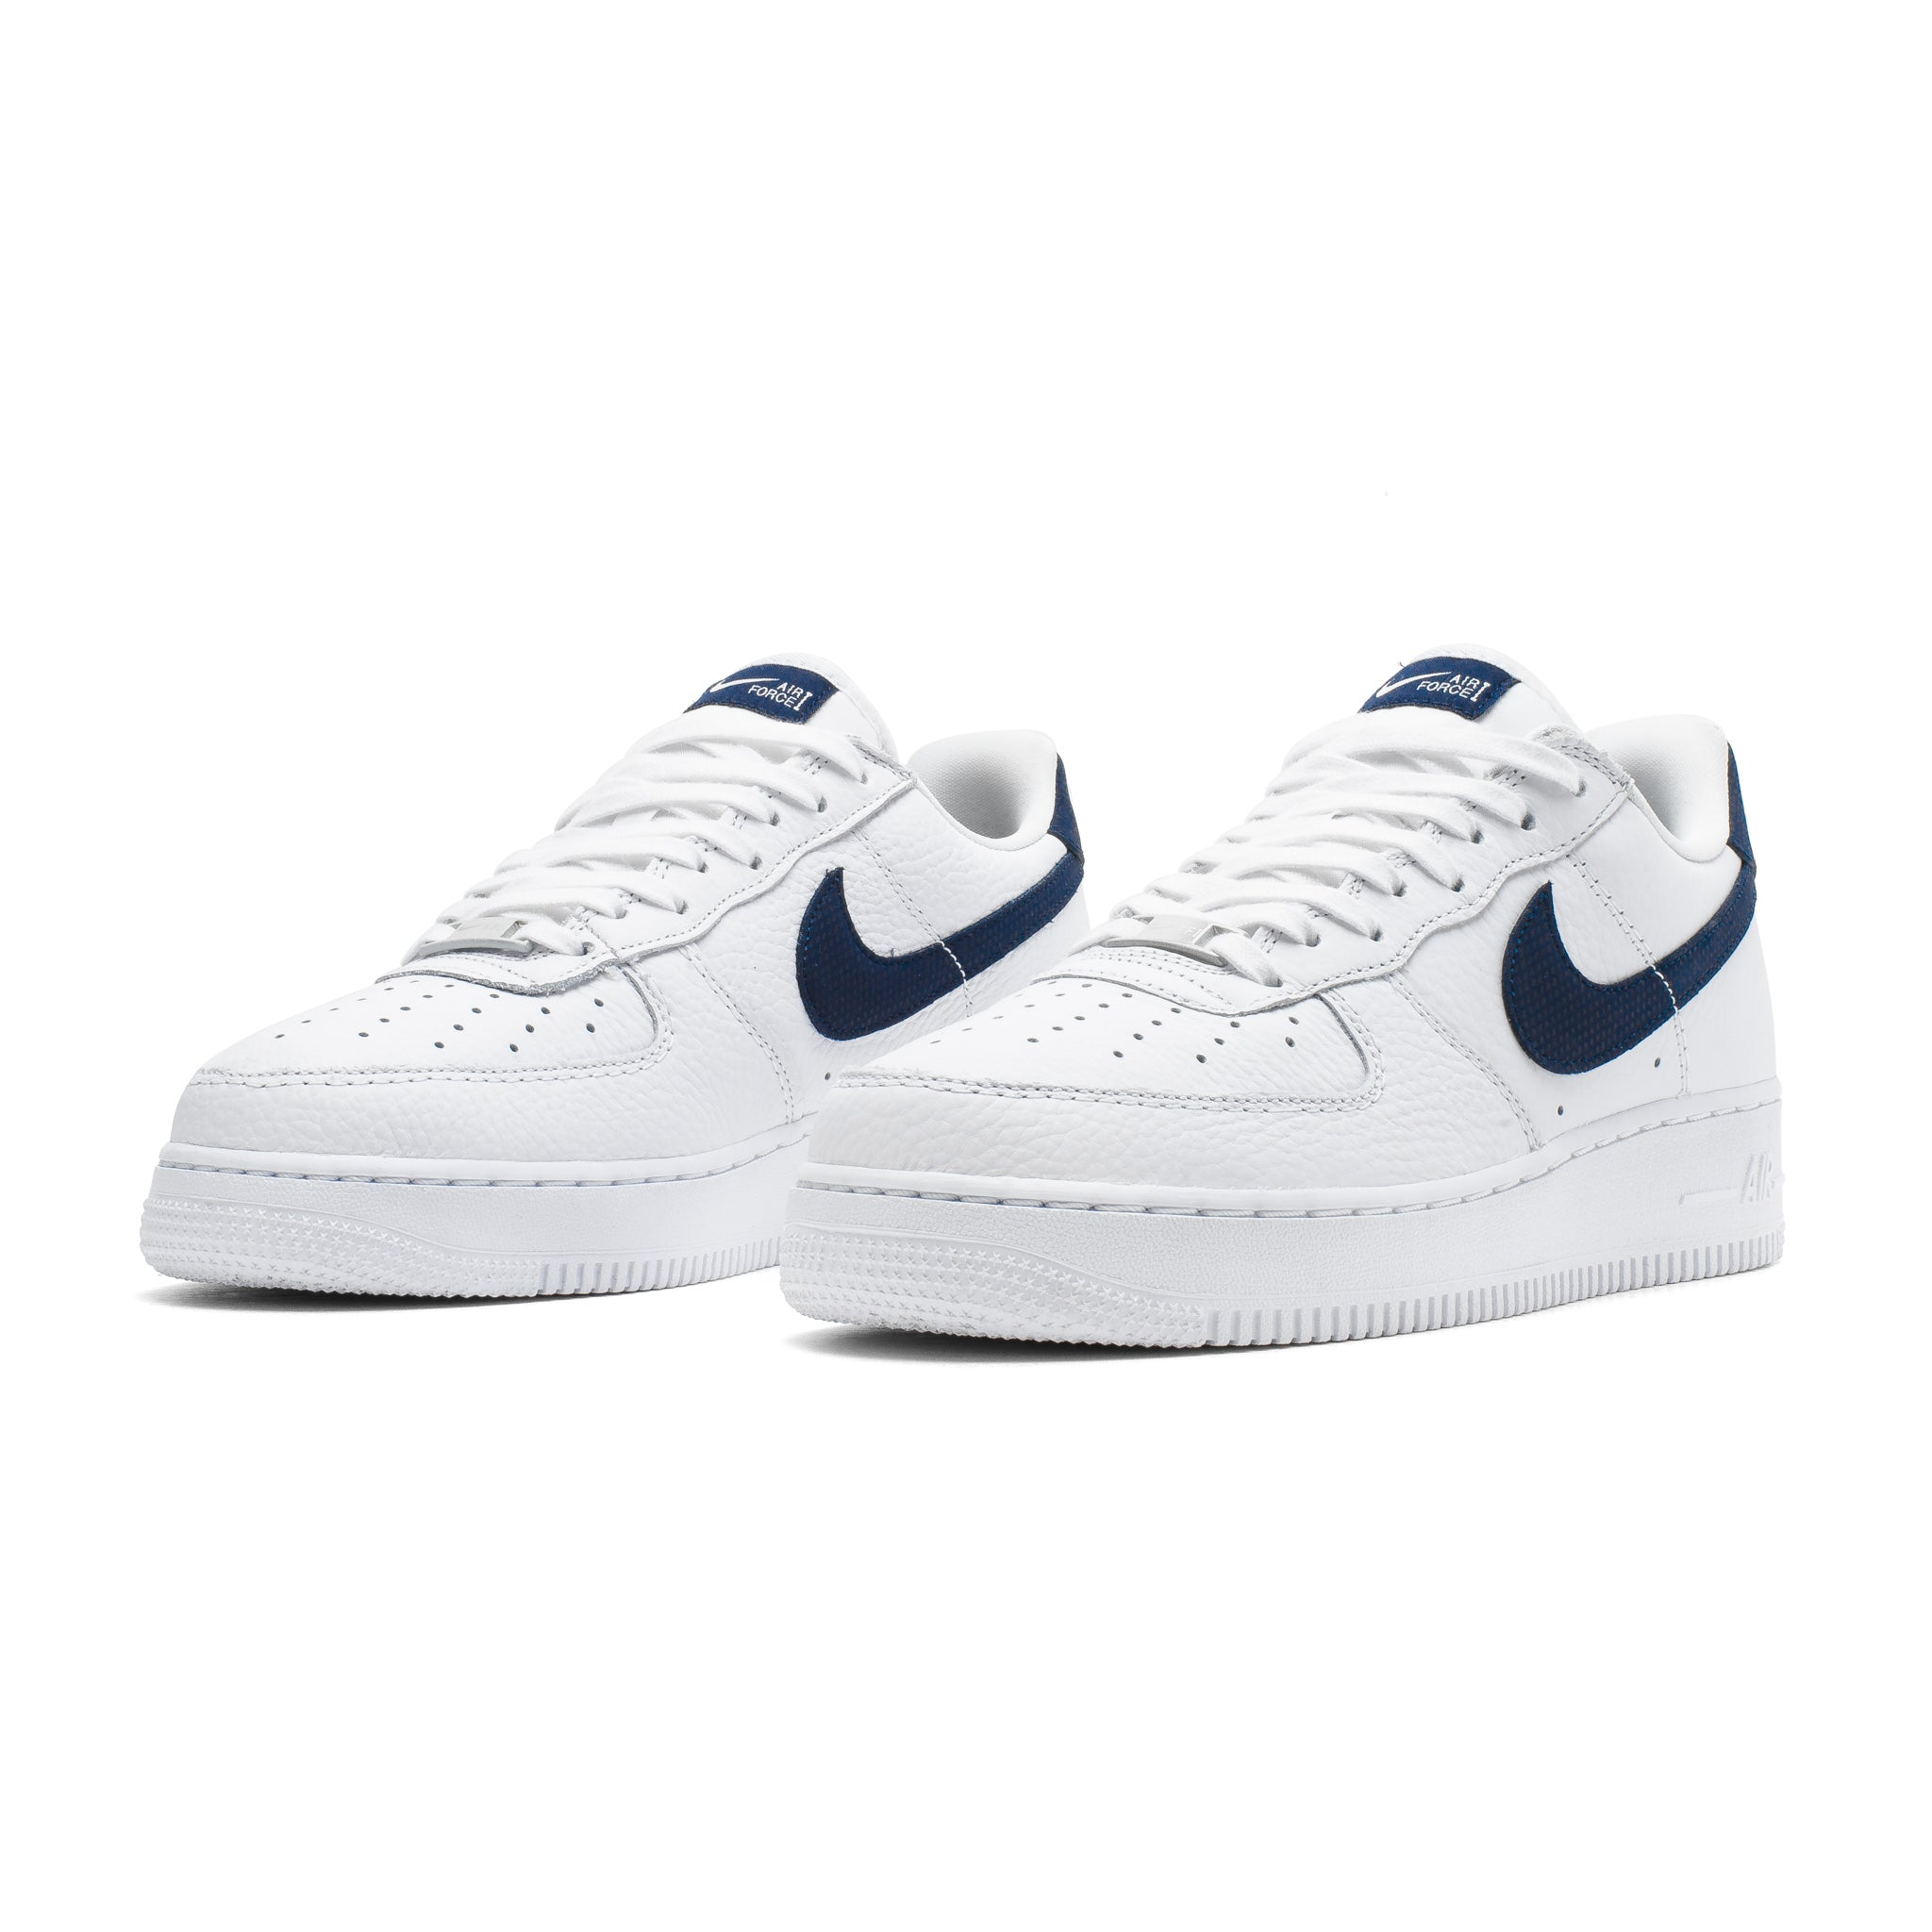 Air Force 1 07 Craft CT2317-100 White/Obsidian